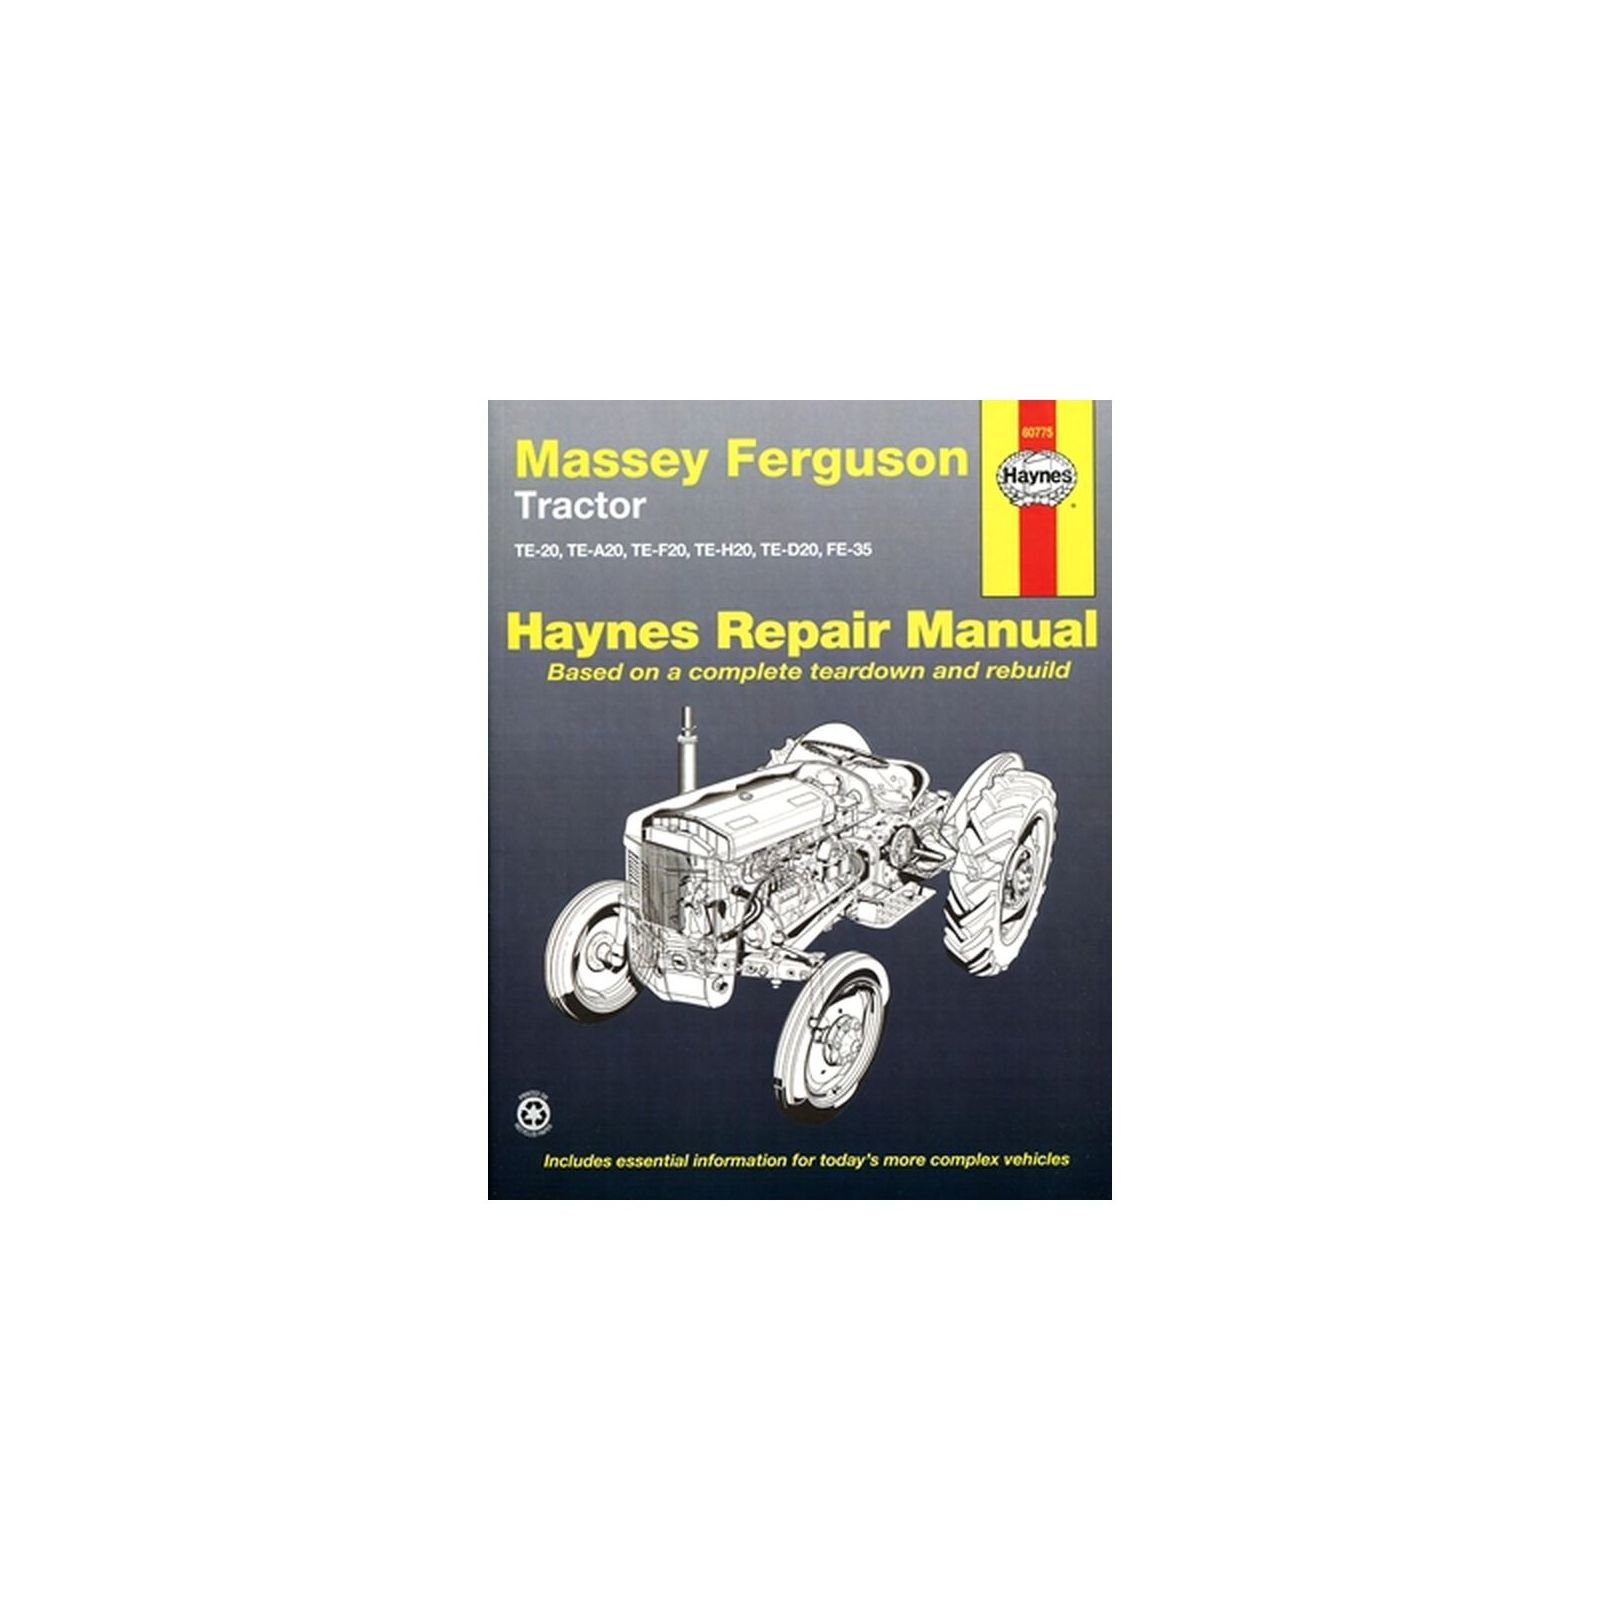 Massey Ferguson Tractor: Amazon.co.uk: Haynes Publishing: 9781563929656:  Books